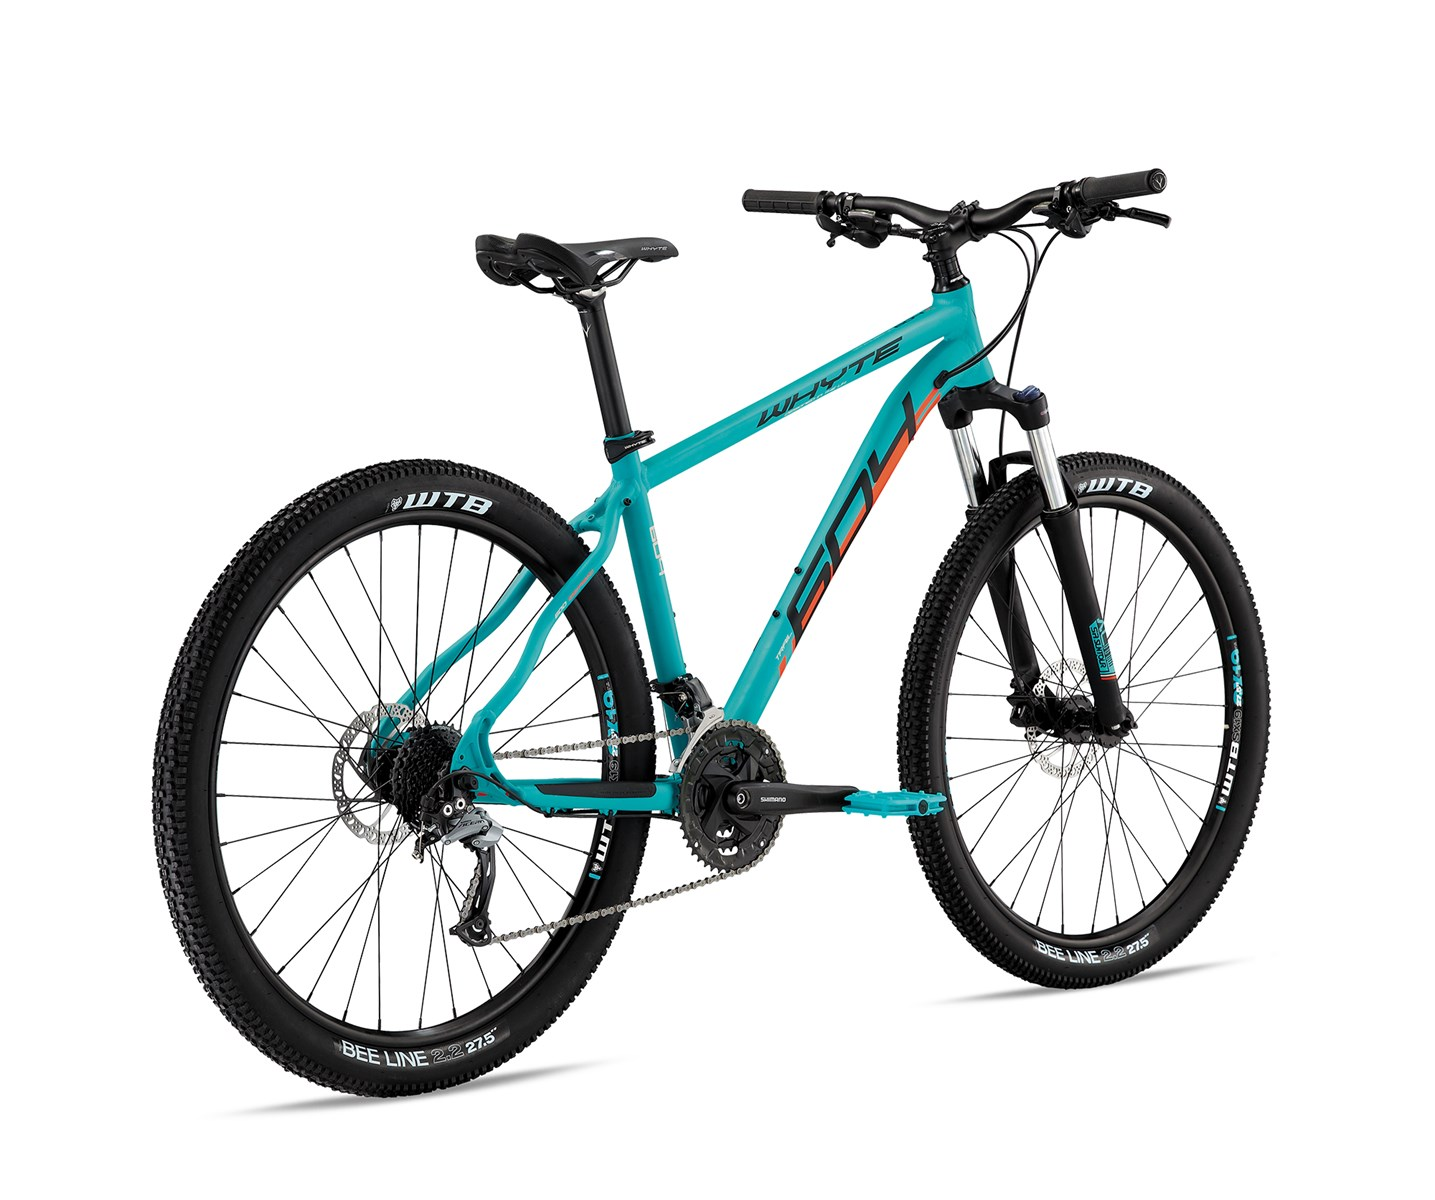 f22362bbb68 2017 Whyte 604 27.5 inch Compact Cross Country Mountain Bike £599.00